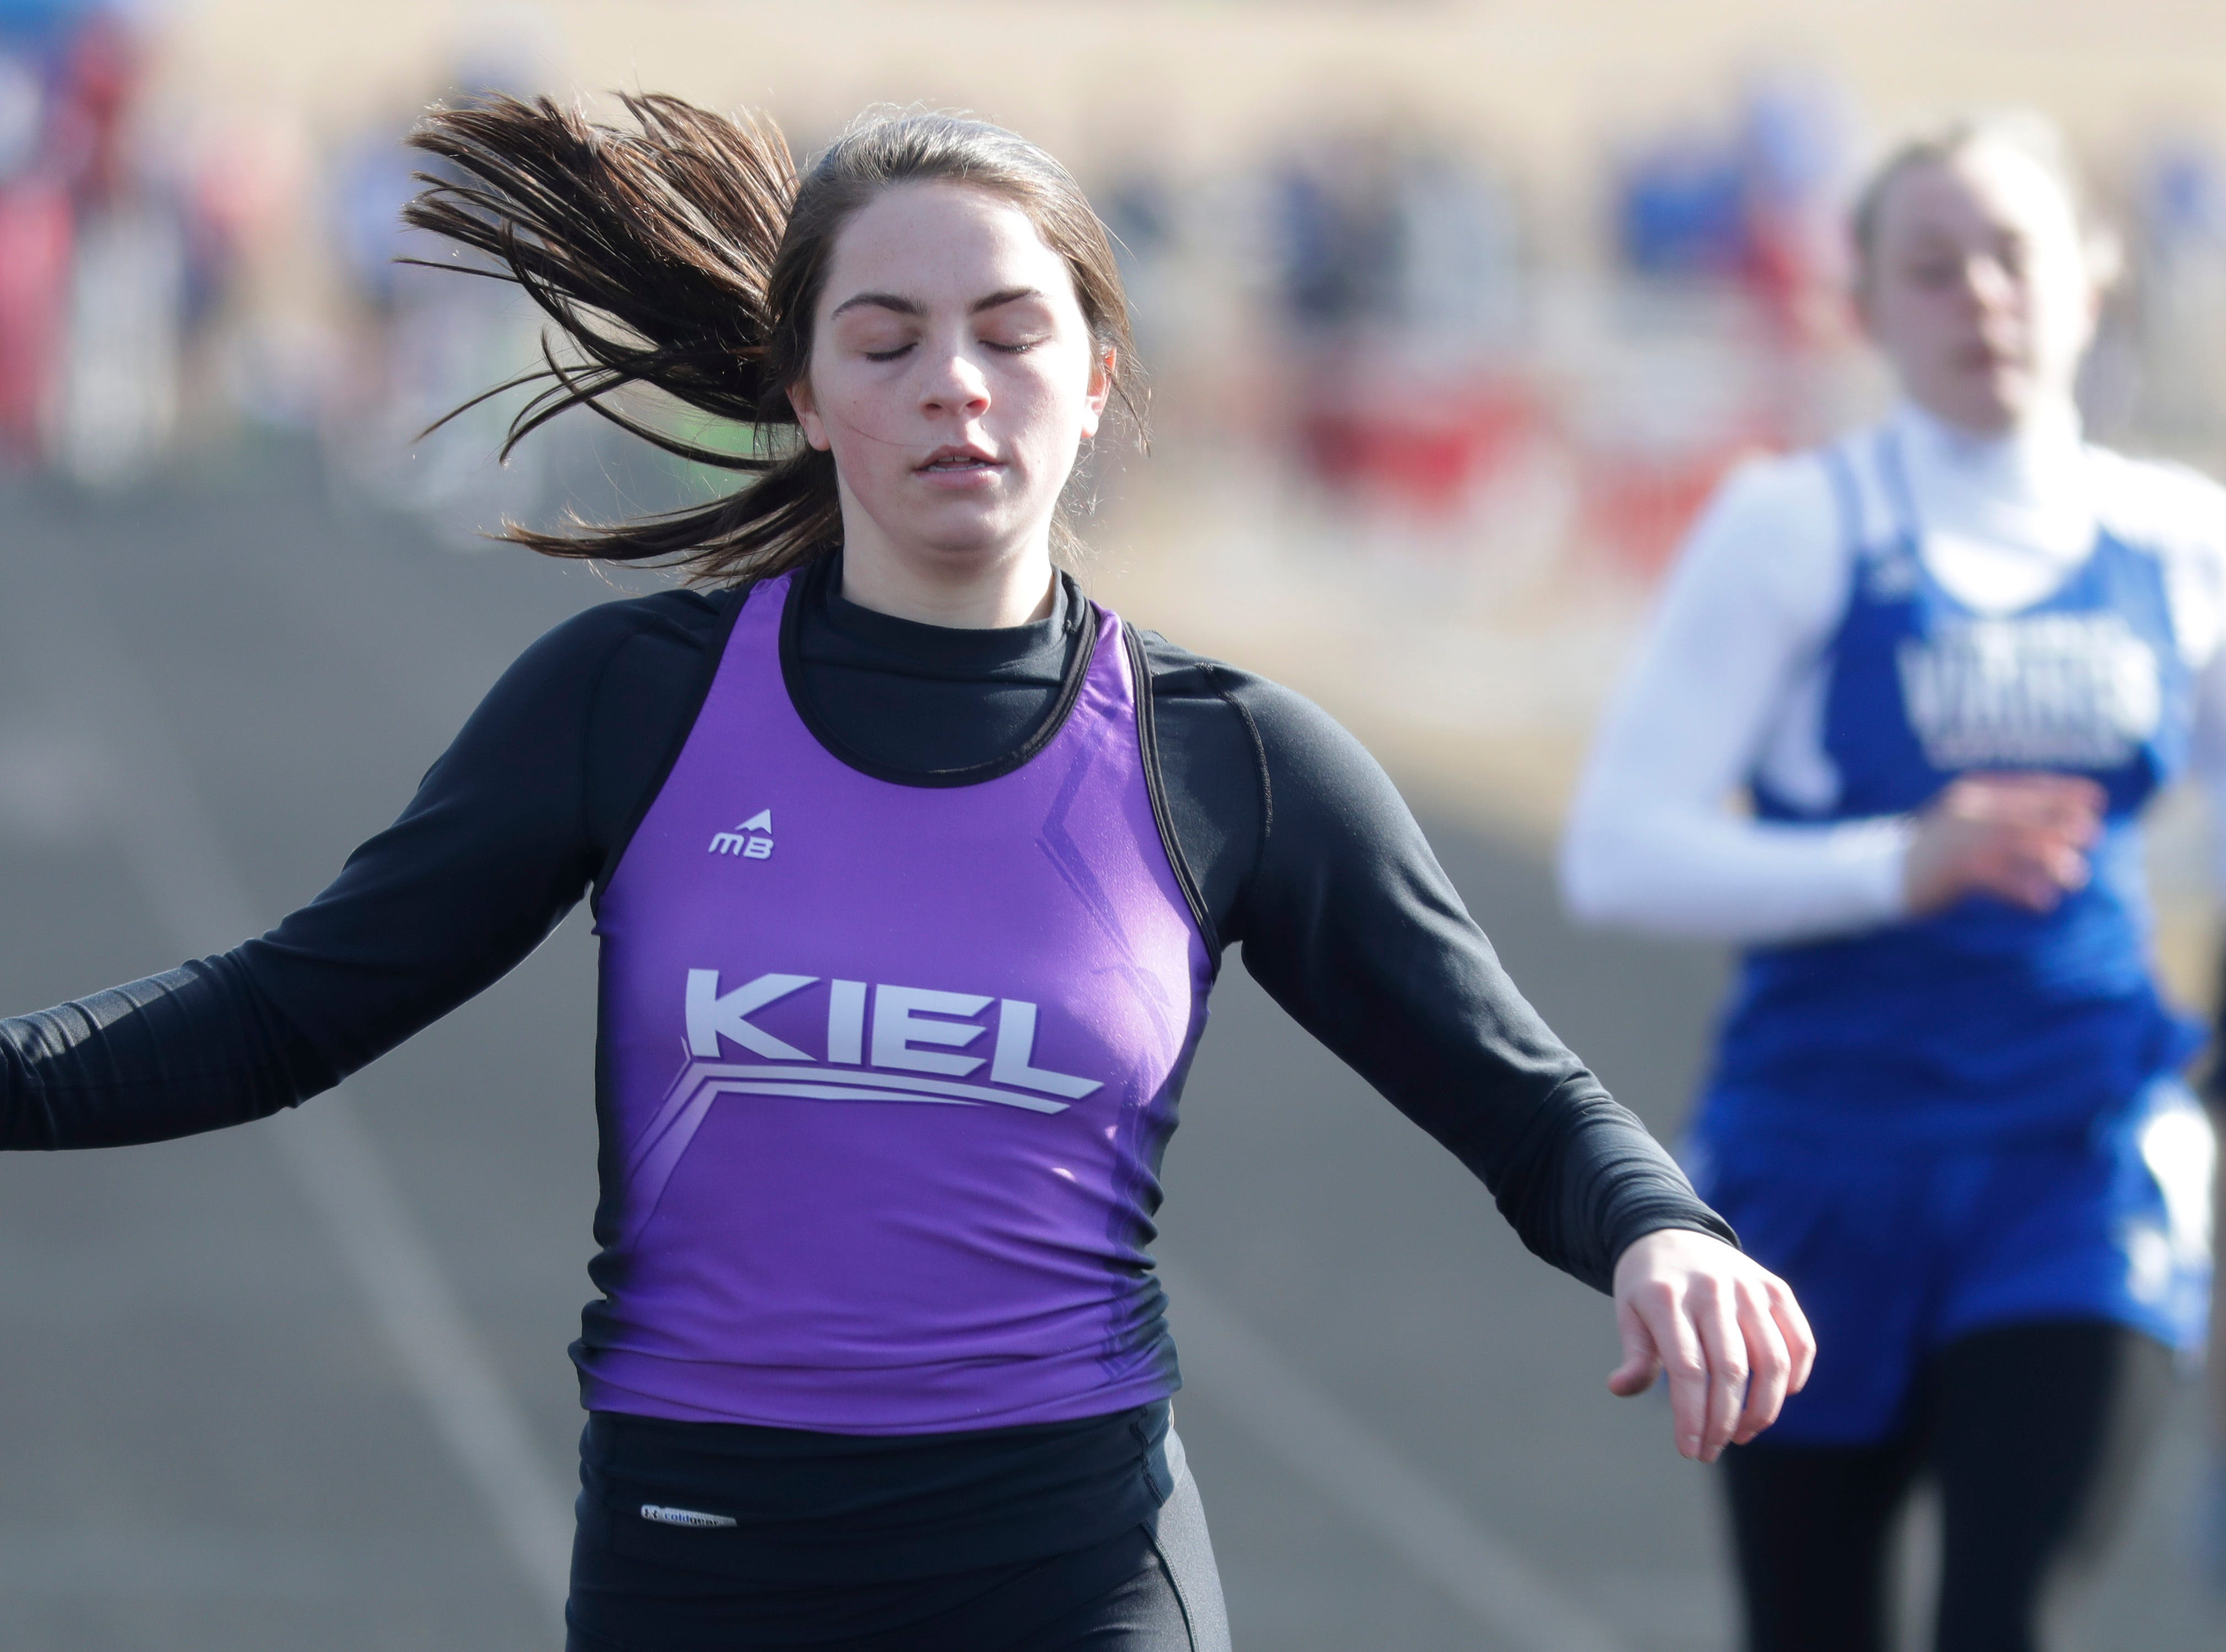 Kiel's Holly Vogel reacts after crossing the finish line in the 100 meter dash, Friday, April 5, 2019, in Oostburg, Wis.